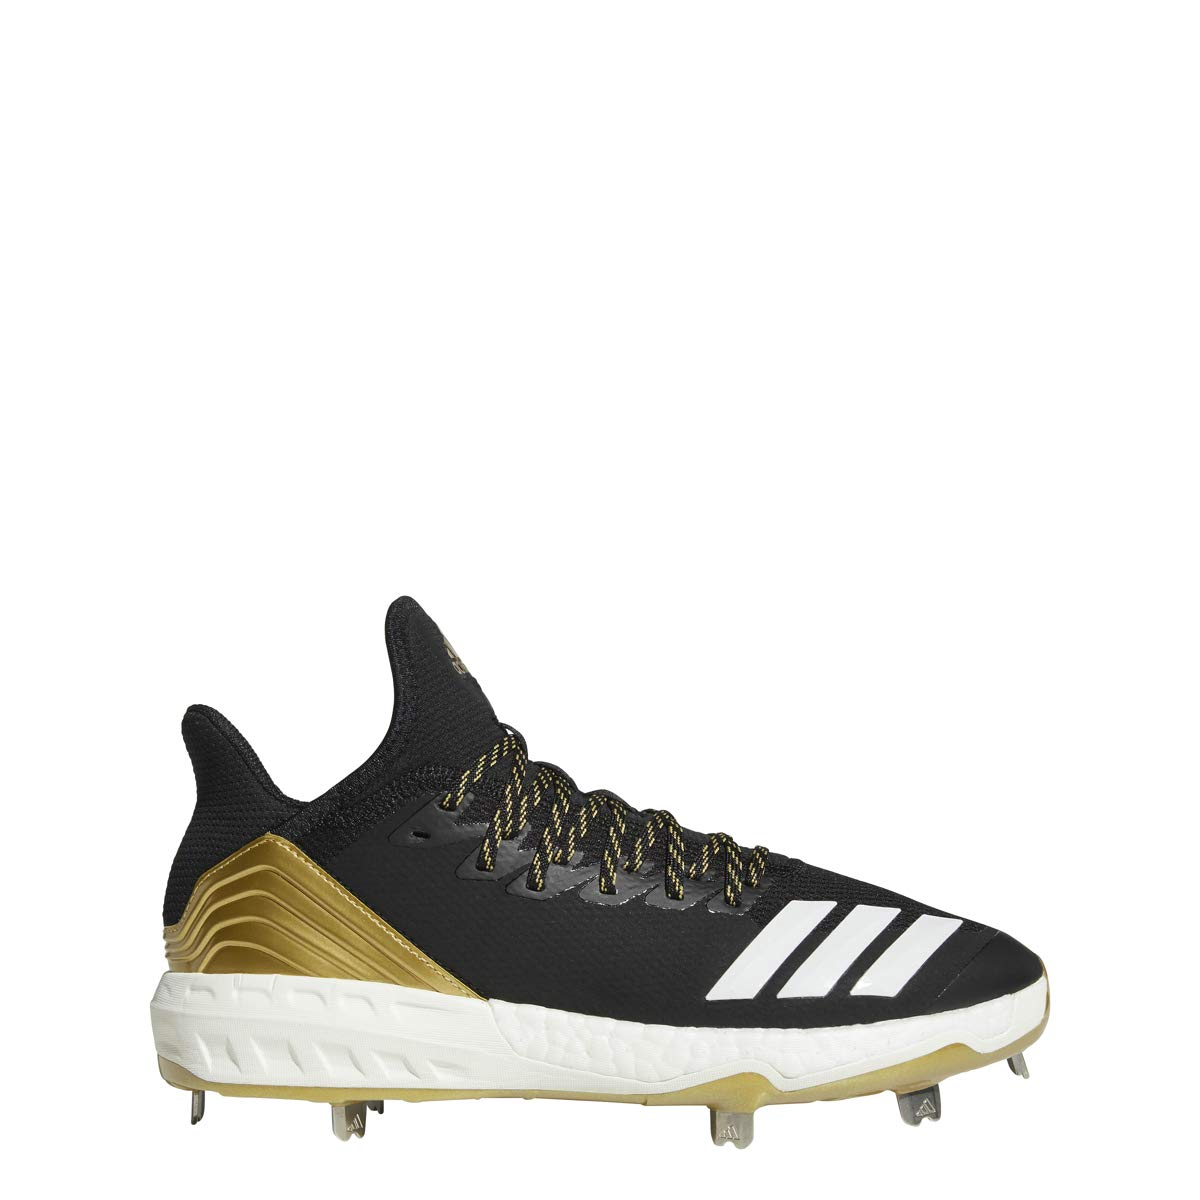 adidas Icon 4 Cleat - Men's Baseball 10 Black/White/Carbon by adidas (Image #1)